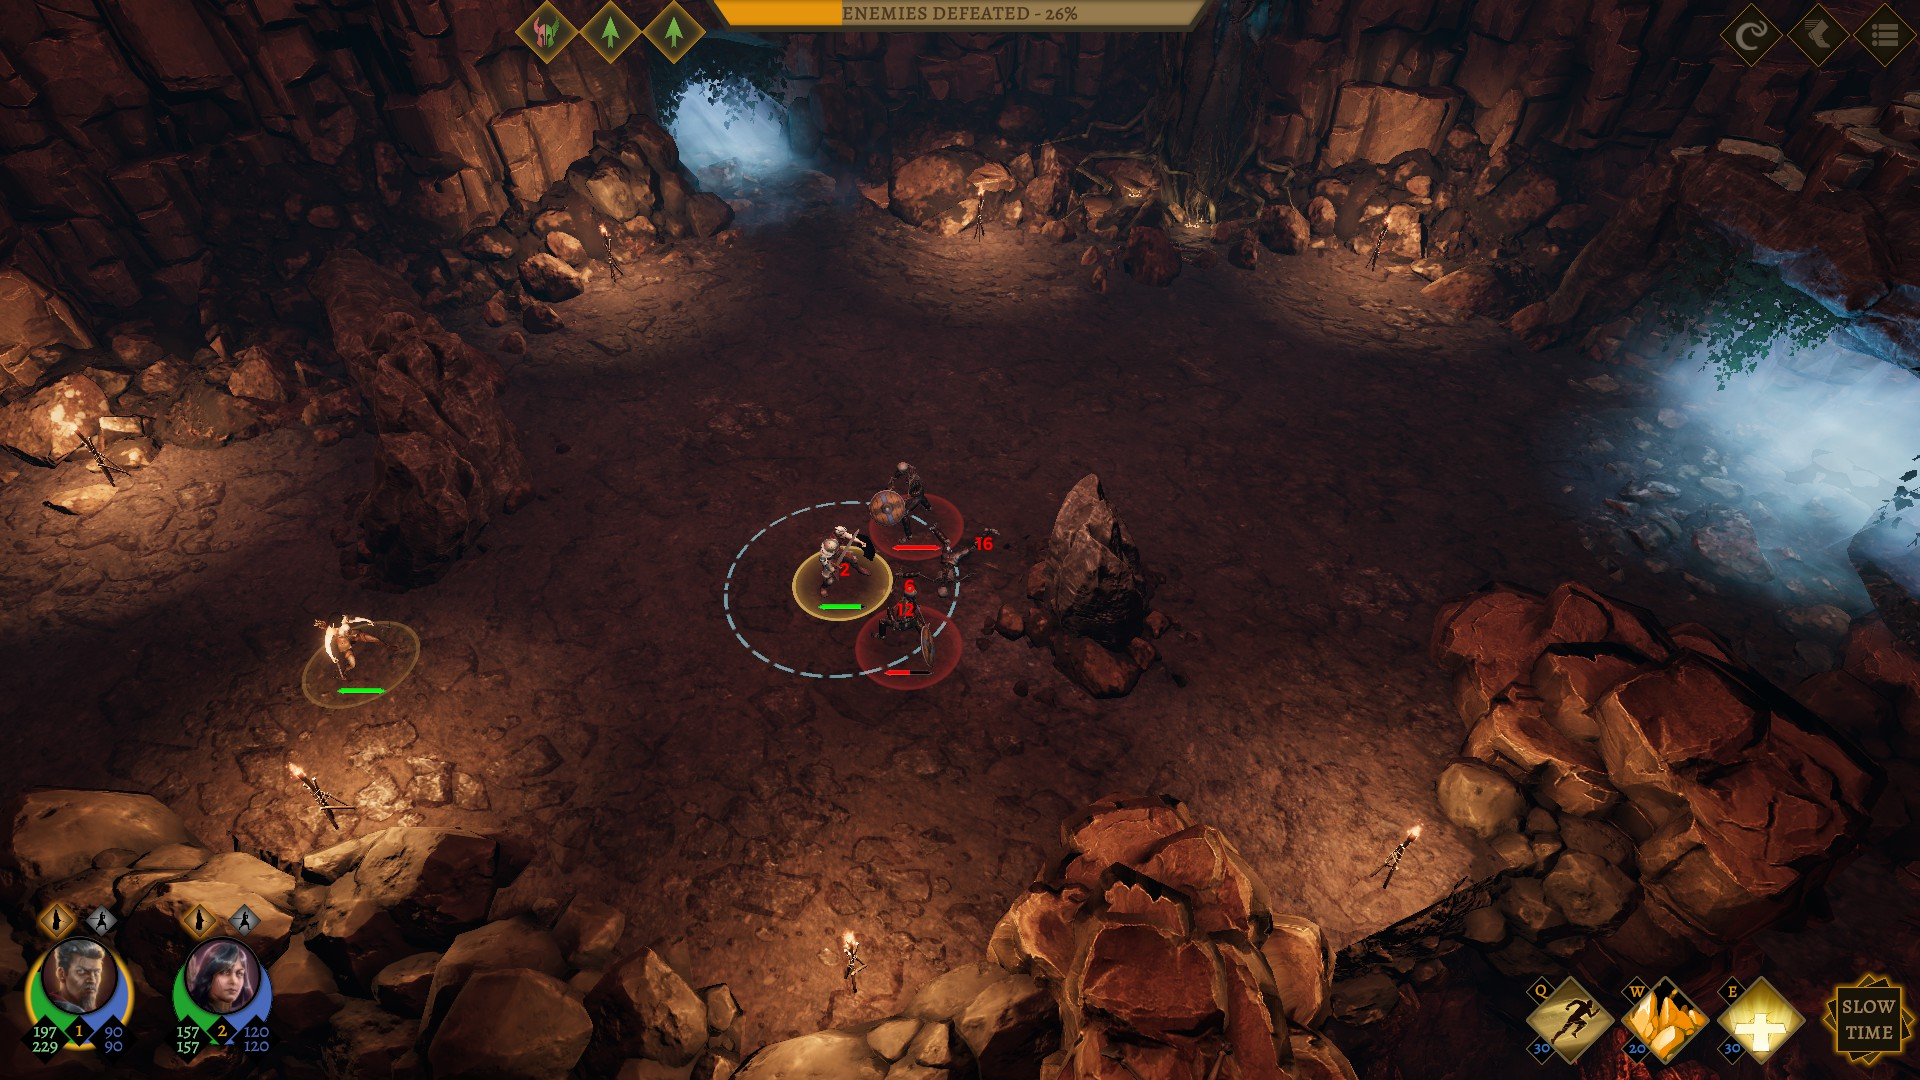 Tower of Time Review - Dungeons, Dragons And Upside Down Towers